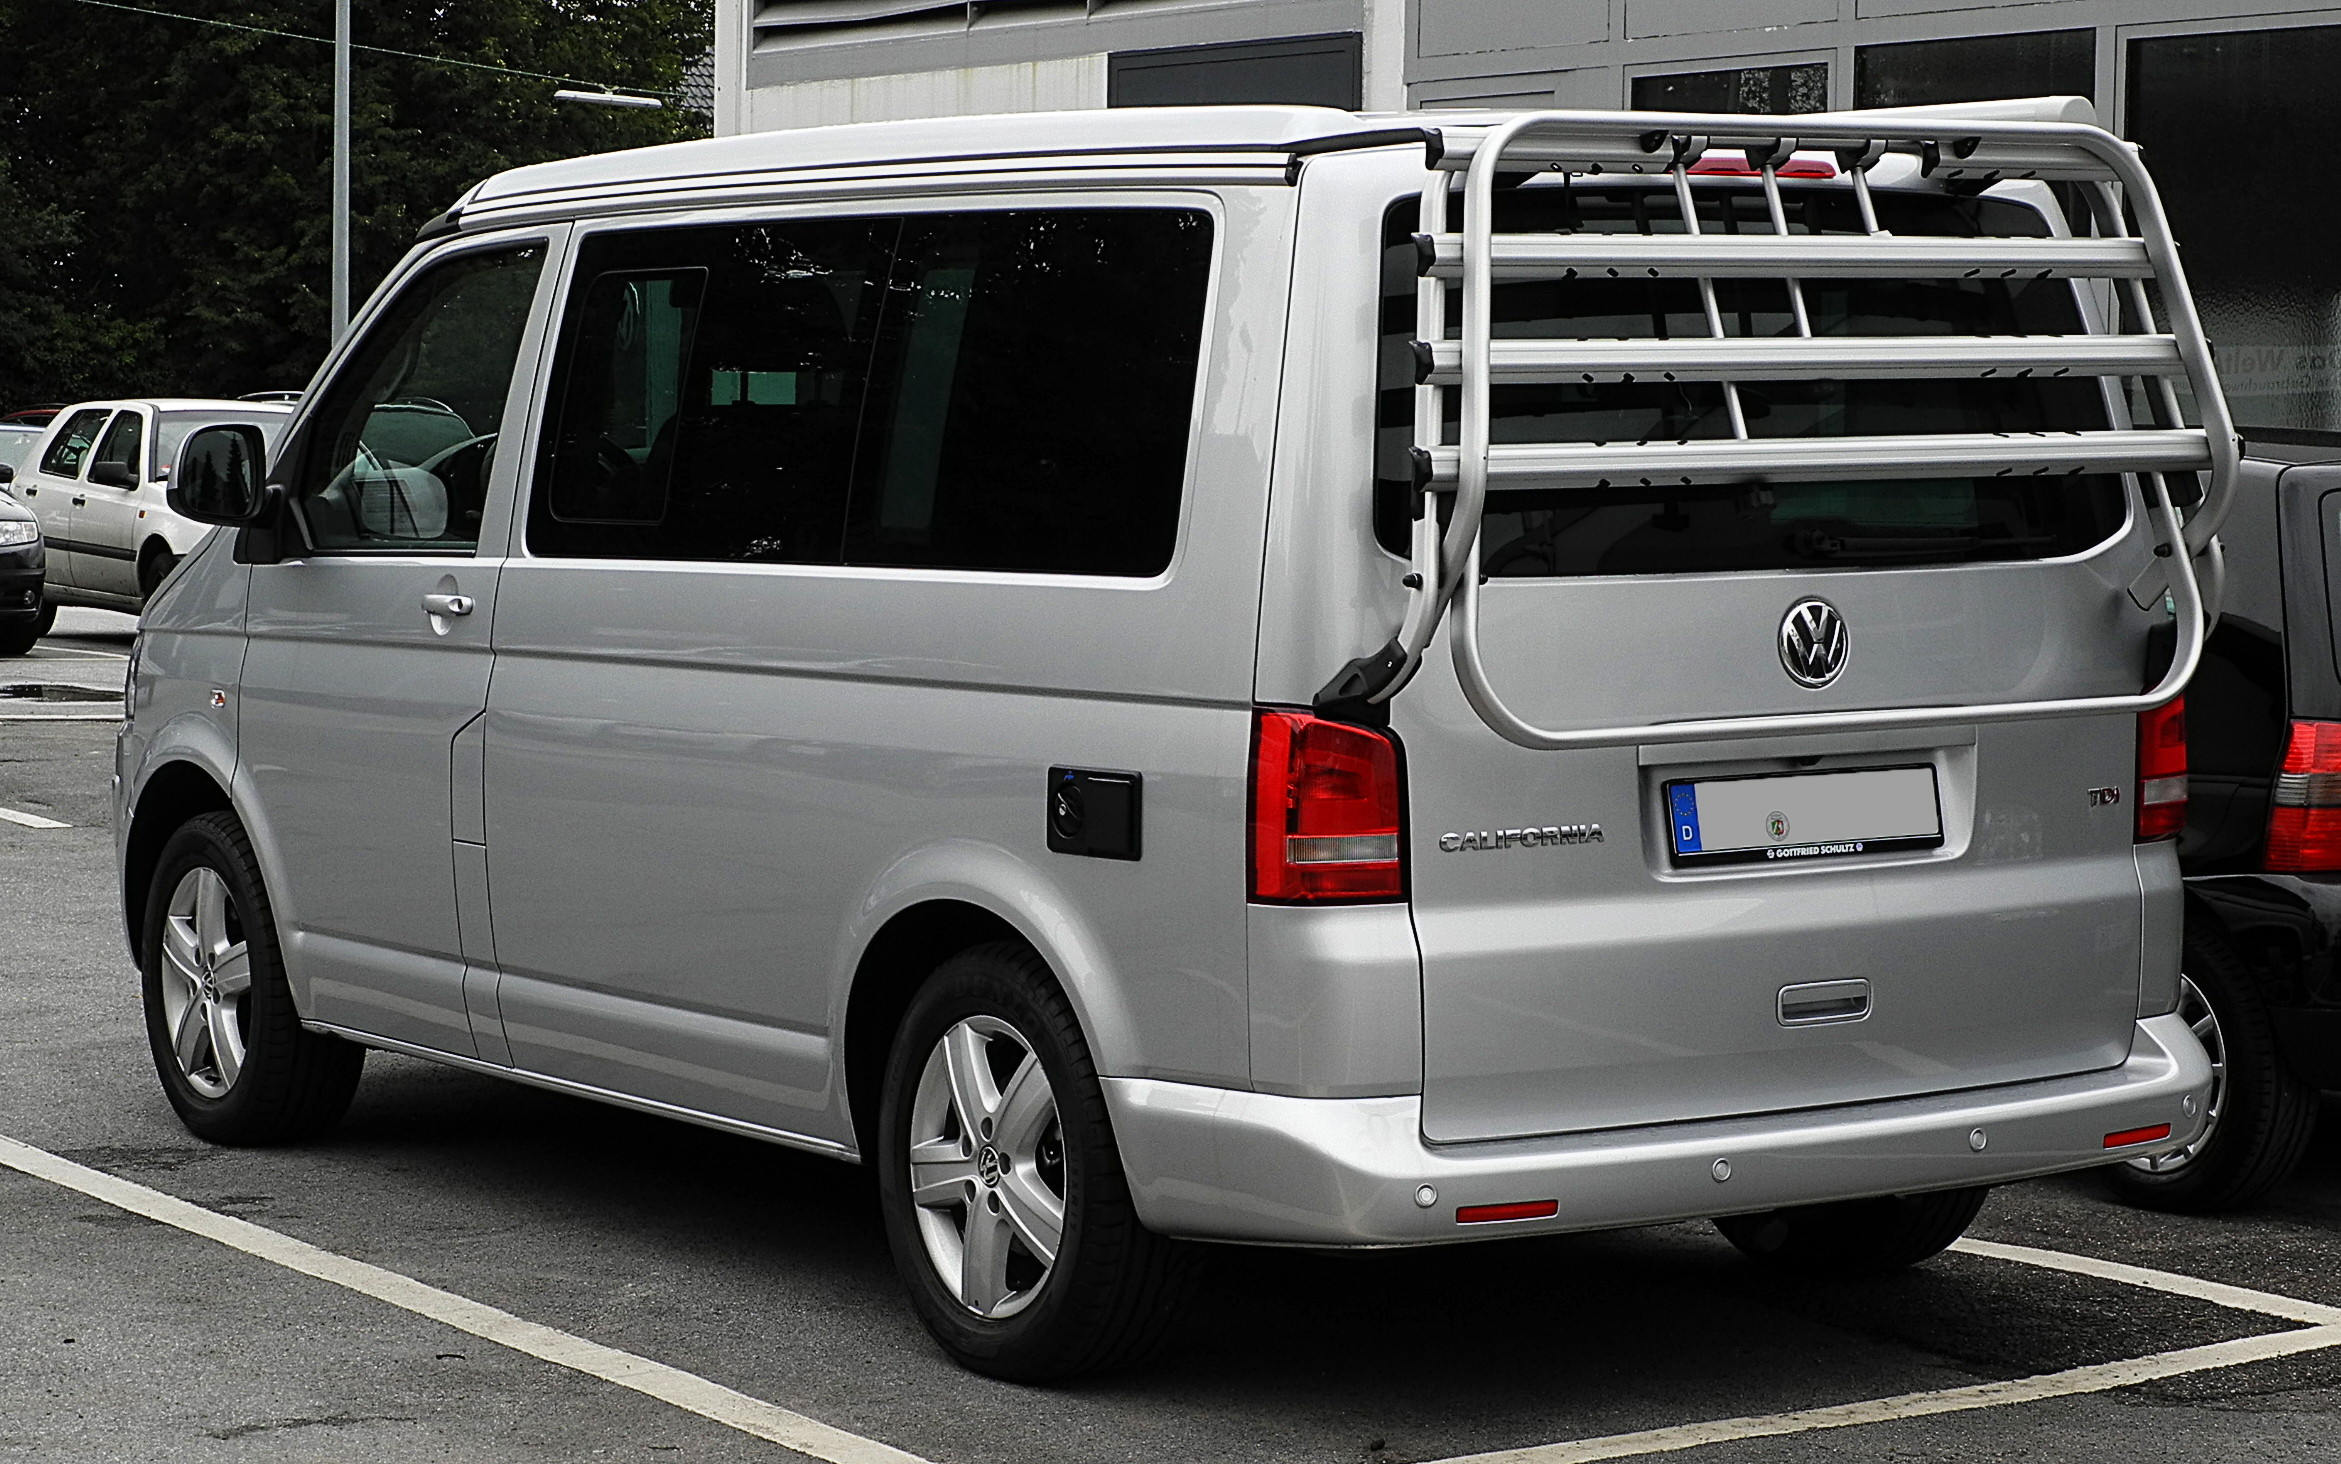 file vw california europe 2 0 tdi t5 facelift heckansicht 1 30 juli 2011. Black Bedroom Furniture Sets. Home Design Ideas